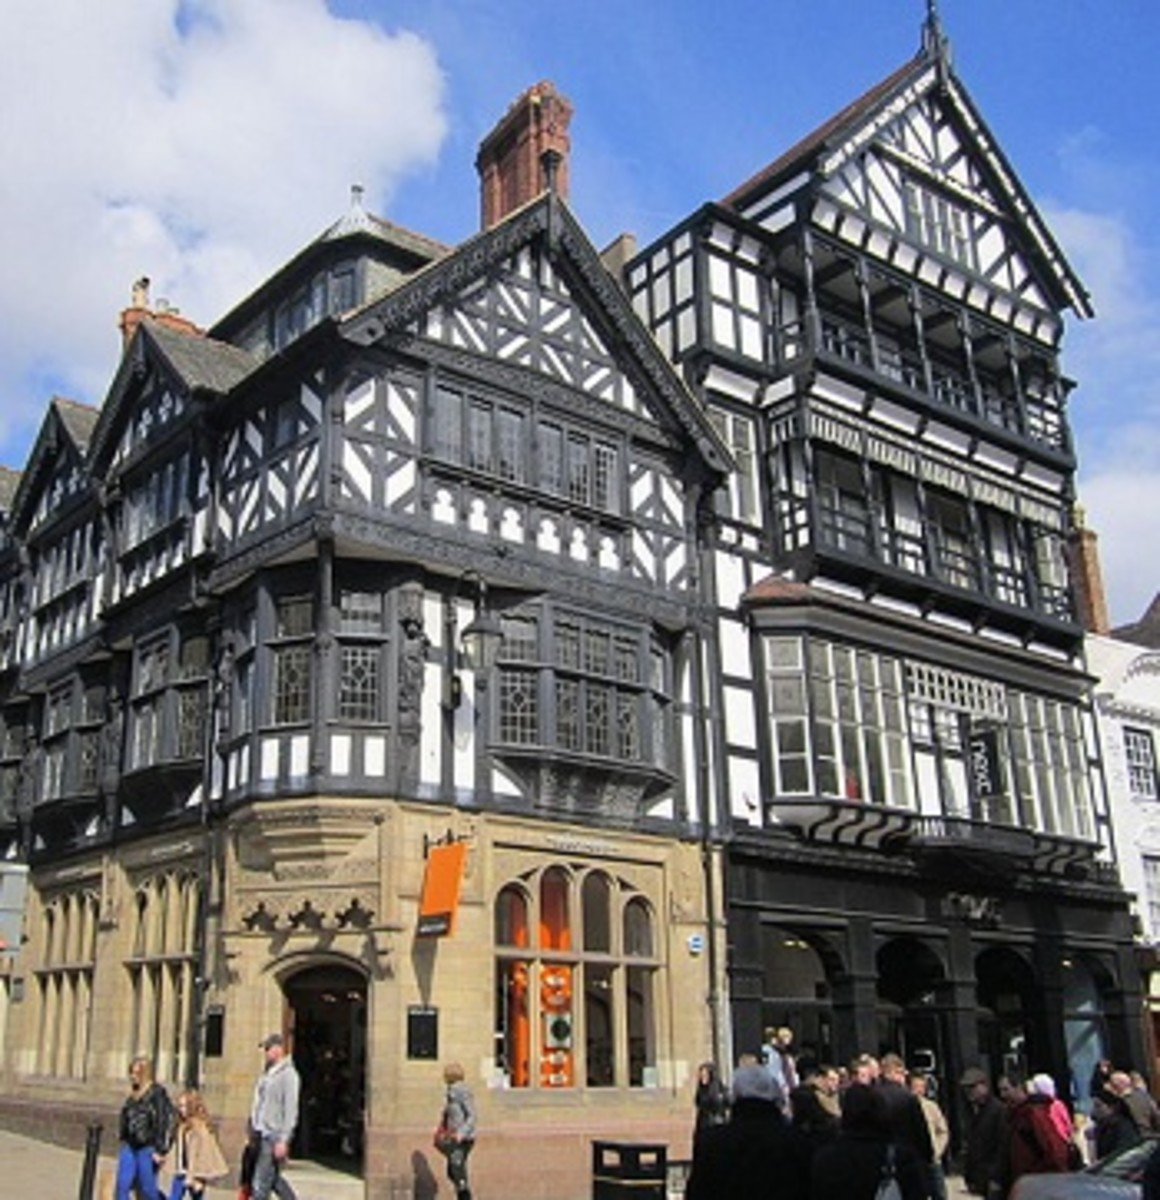 Buildings on Eastgate Street, Chester, UK